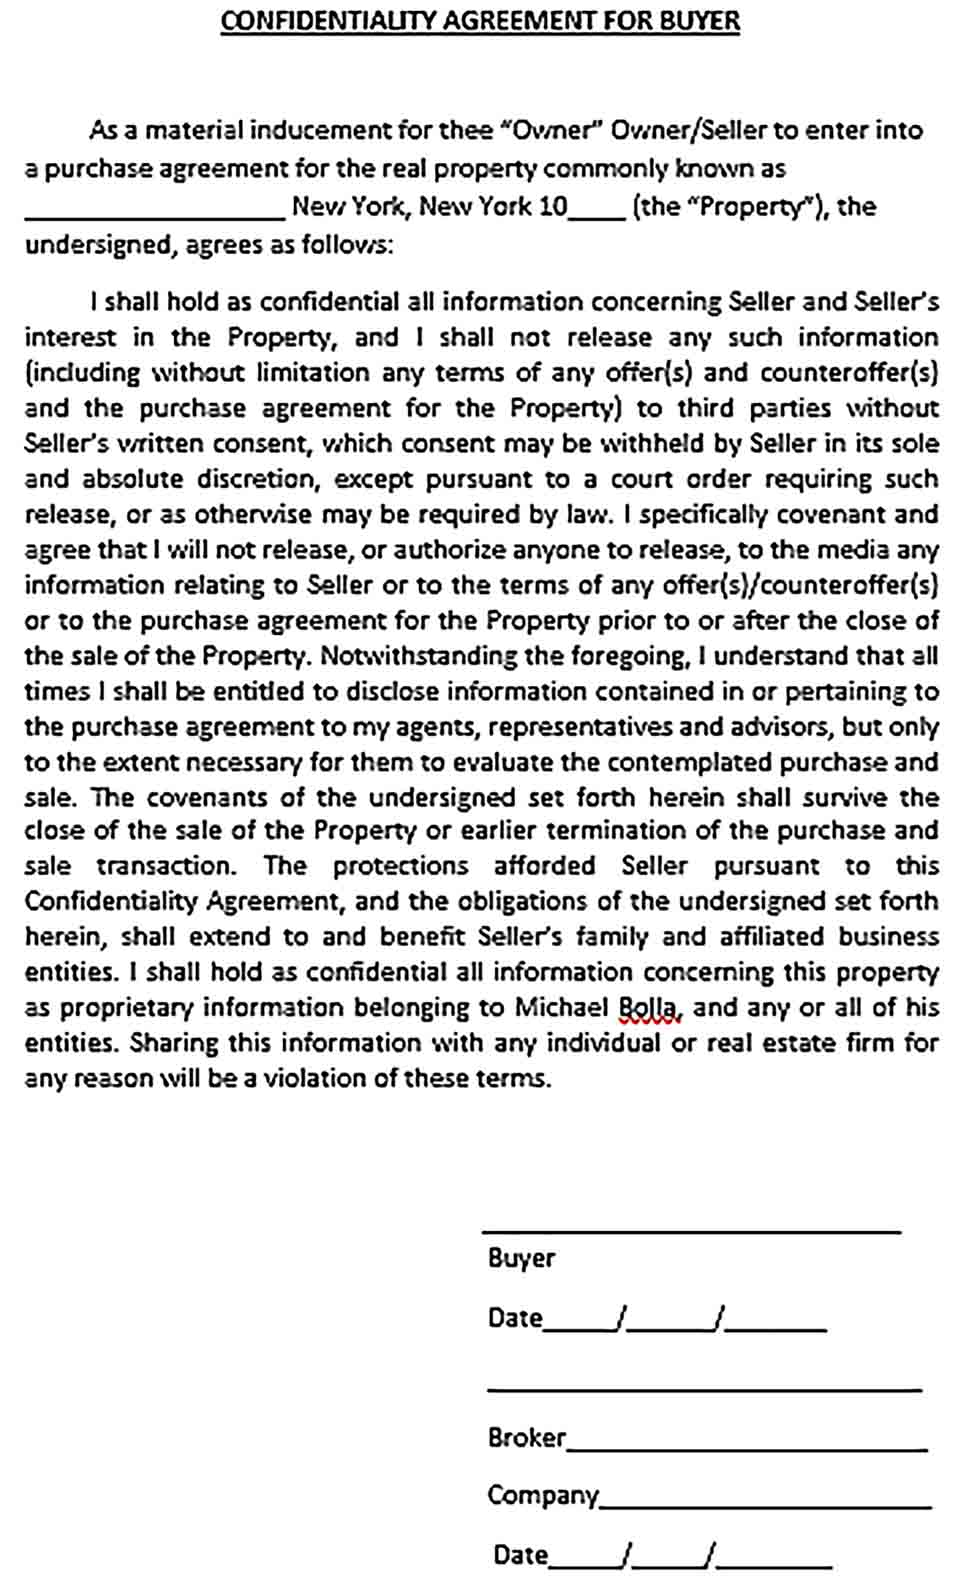 Sample Real Estate Confidentiality Agreement Form